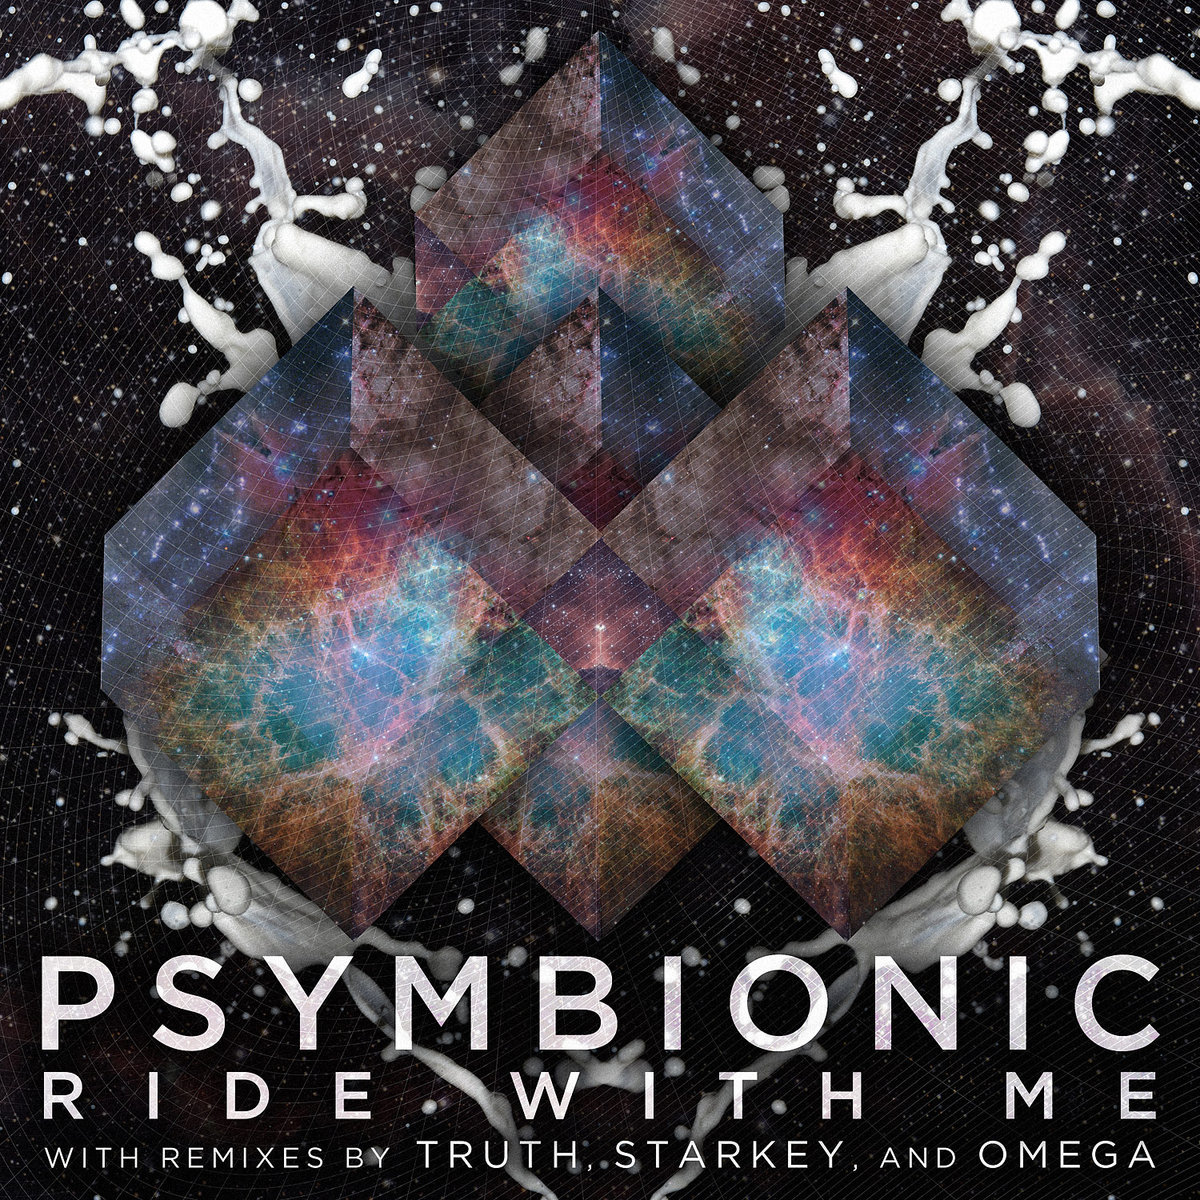 Psymbionic - Ride With Me (Omega Remix) @ 'Ride With Me' album (electronic, dubstep)